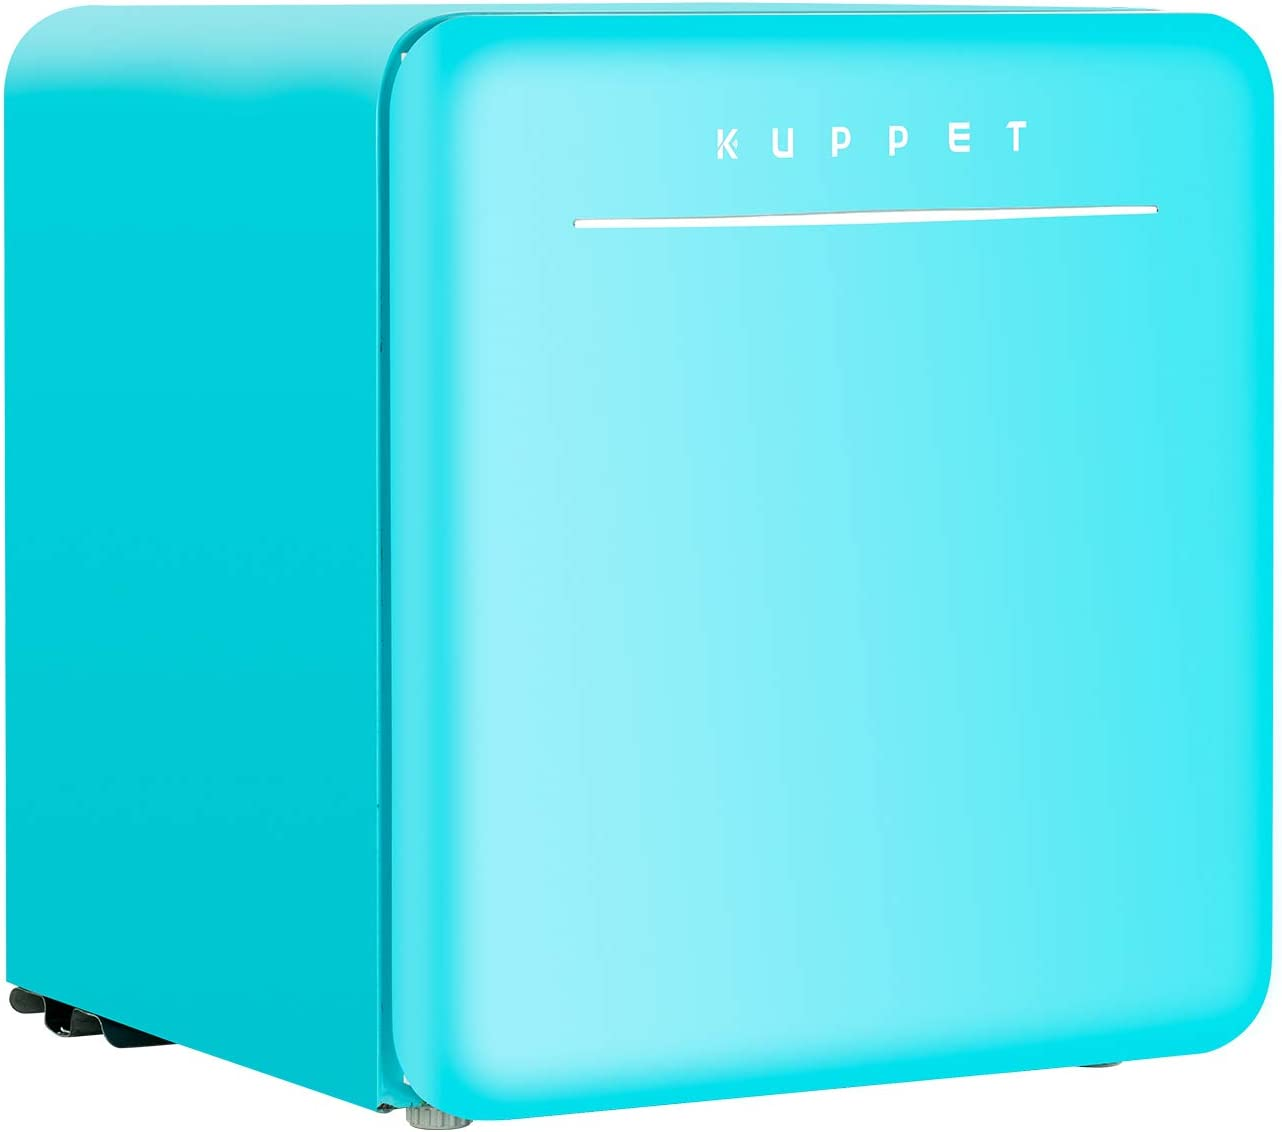 KUPPET Classic Retro Compact Refrigerator Single Door, Mini Fridge with Freezer, Small Drink Chiller for Home,Office,Dorm, Small beauty cosmetics Skin care mask refrigerated for home,1.6 Cu.Ft (Blue)